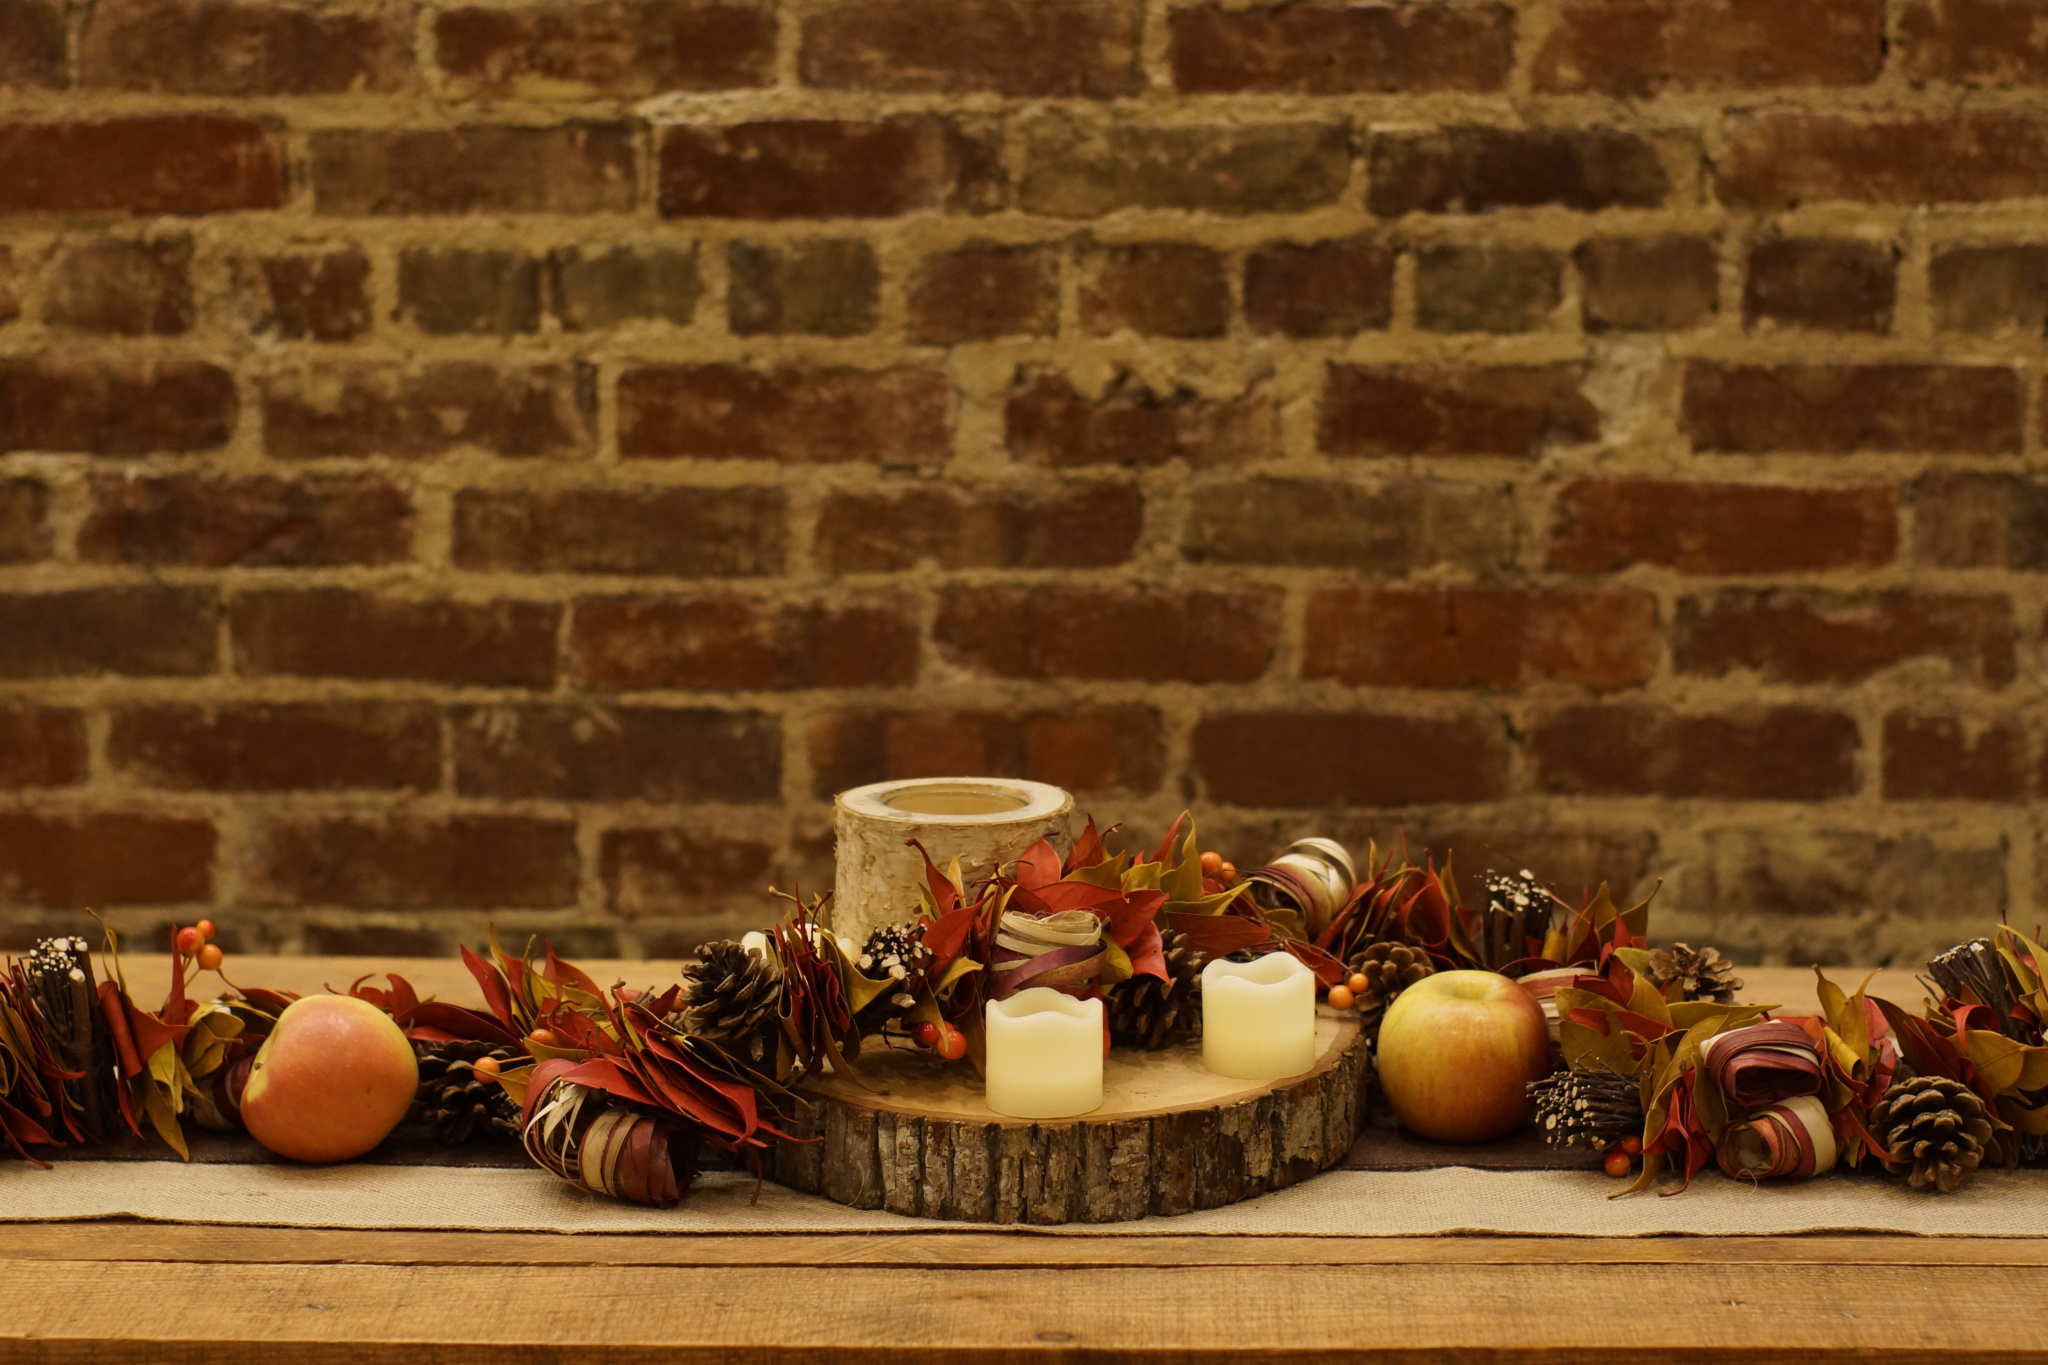 DIY Pallet Coffee Table with Hairpin Legs & Fall Autumn Decor Decorations - Happy Thanksgiving - Wood Slice Cutting Board